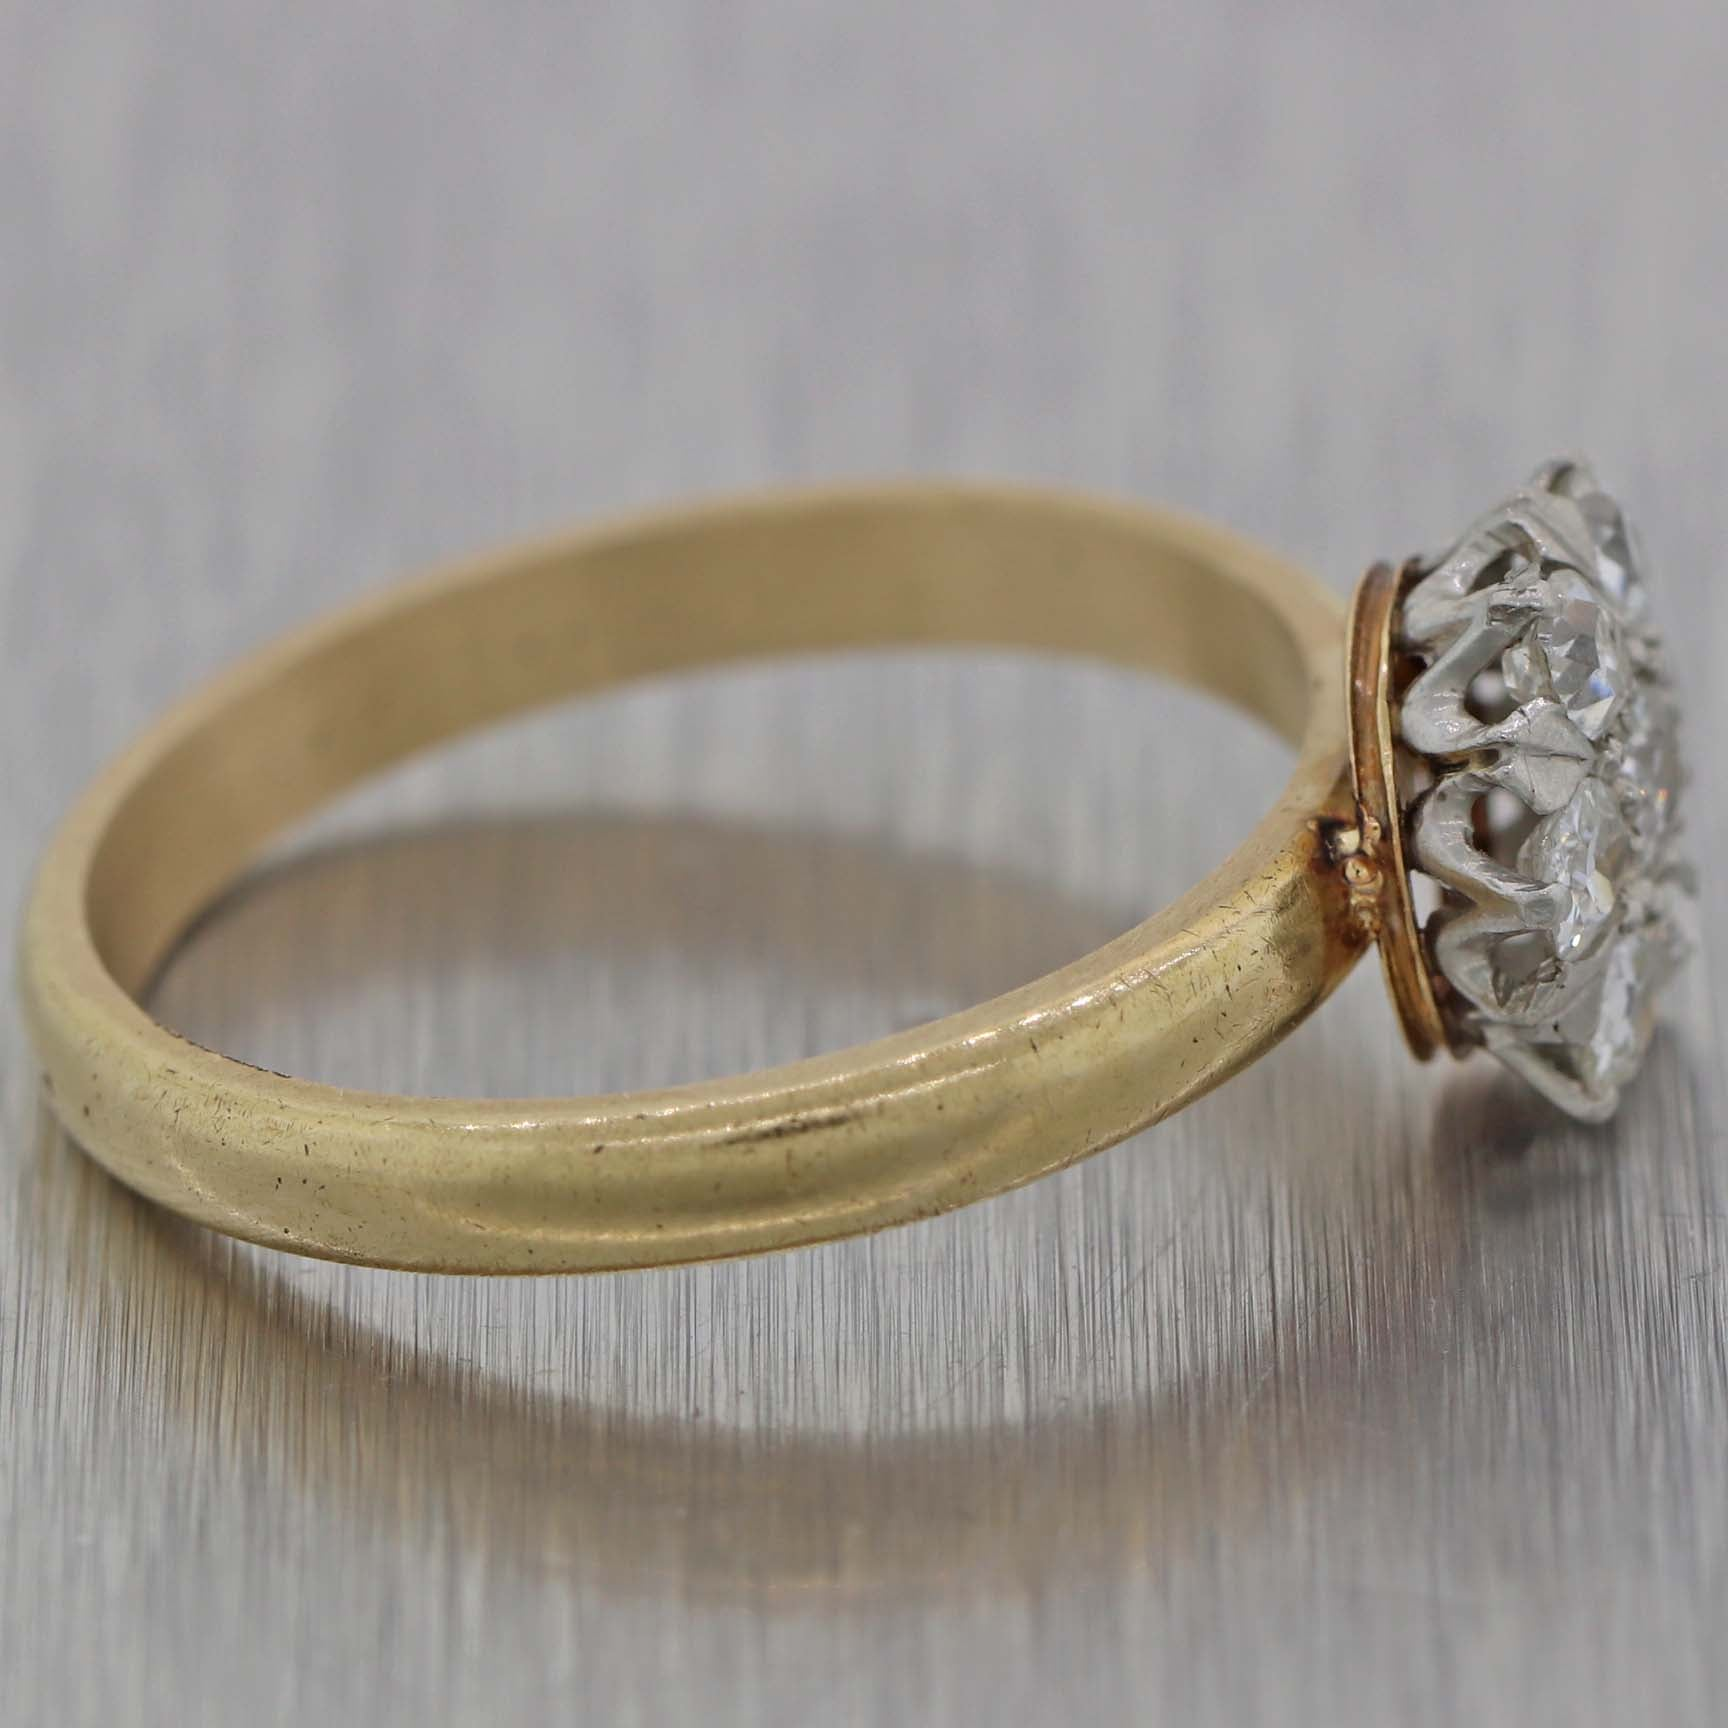 1930s Antique Art Deco Platinum 14k Yellow Gold .70ctw Diamond Cocktail Ring